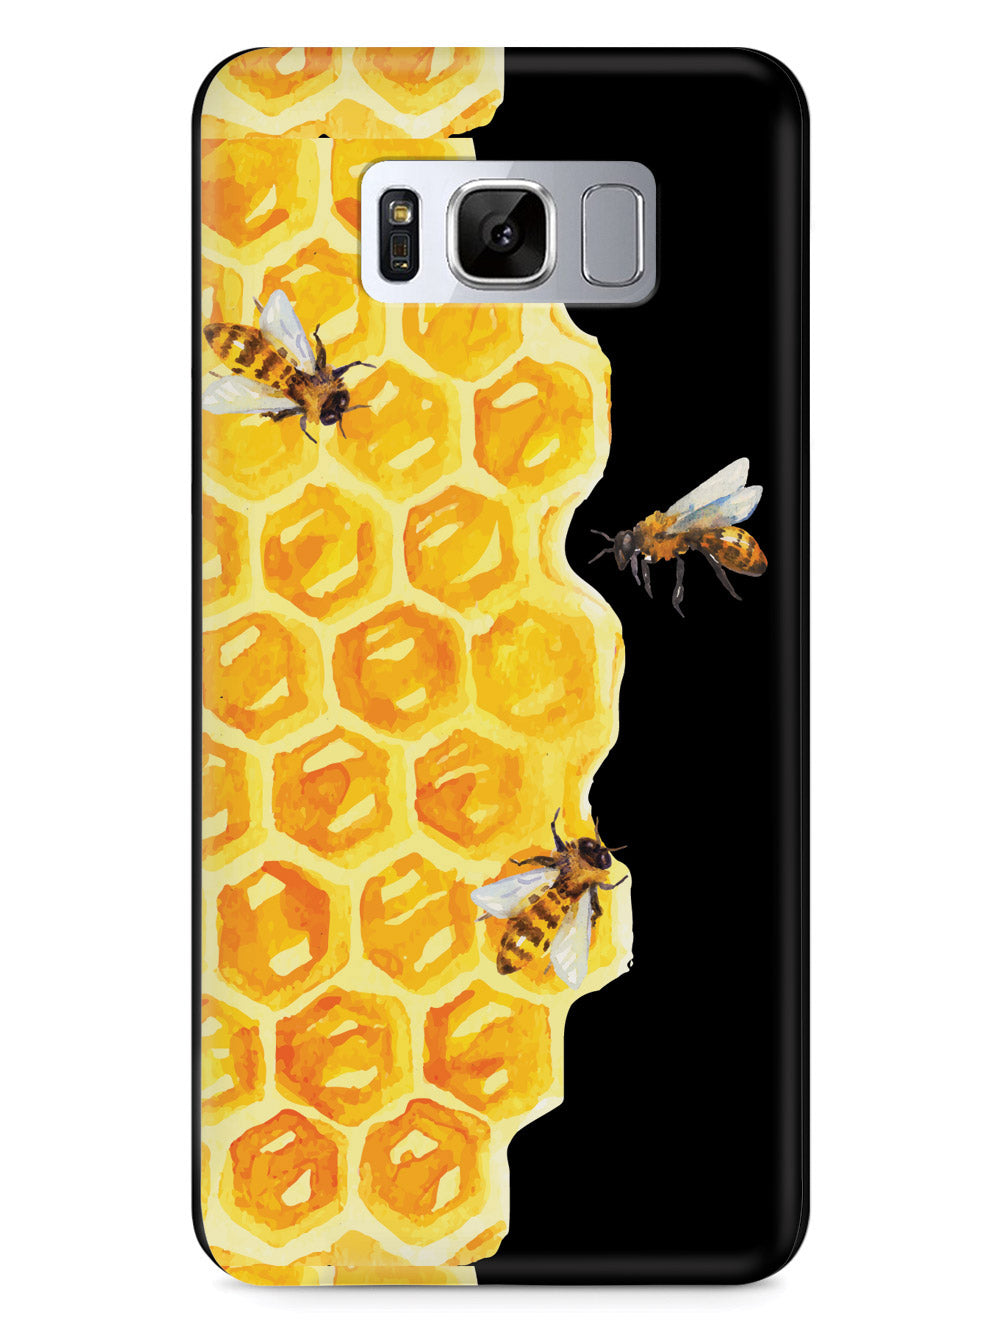 Watercolor Bees on Honeycomb - Black Case